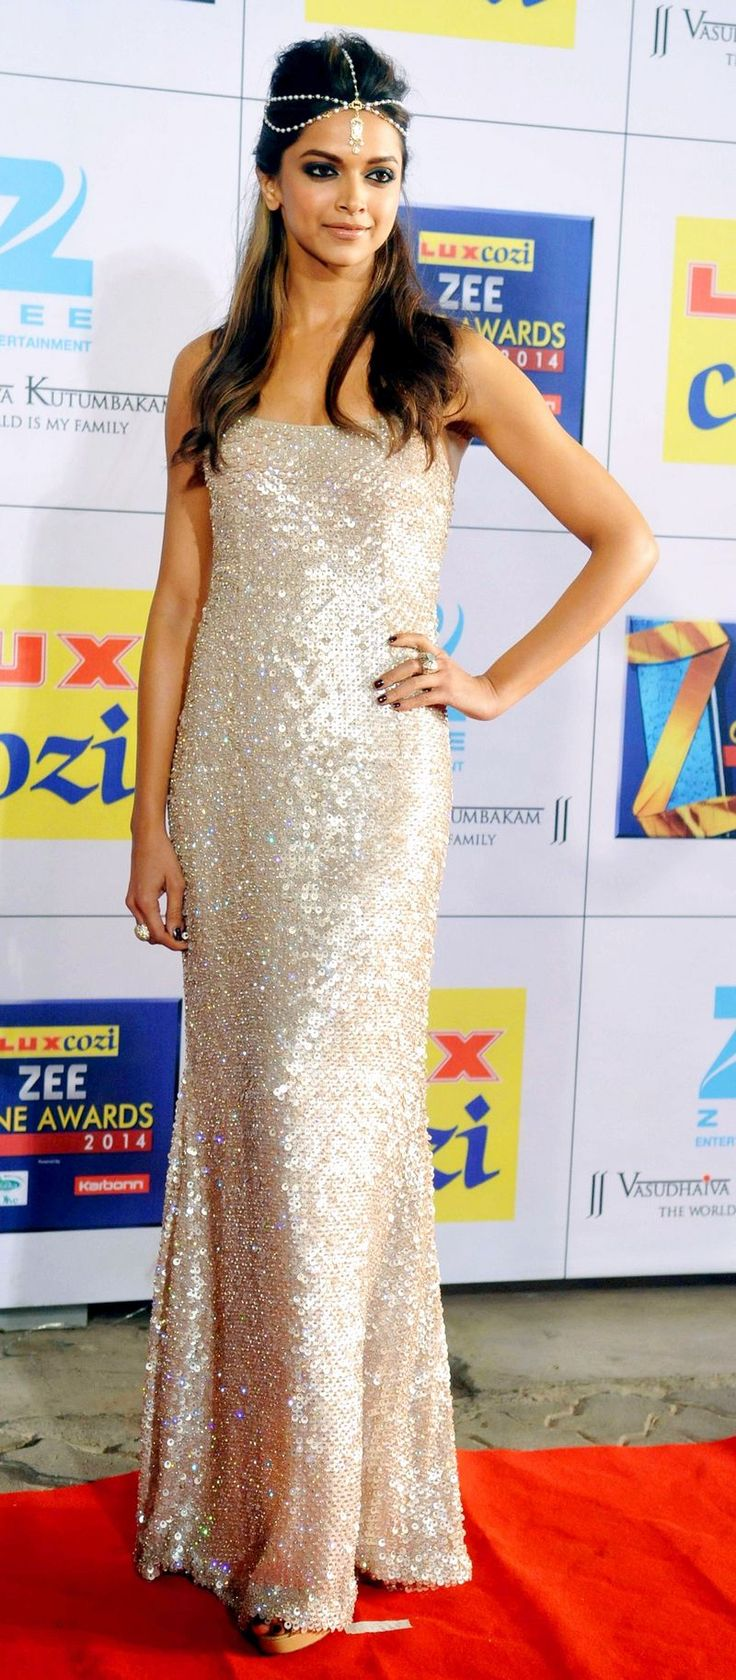 Deepika Padukone on the red carpet at the Zee Cine Awards 2014